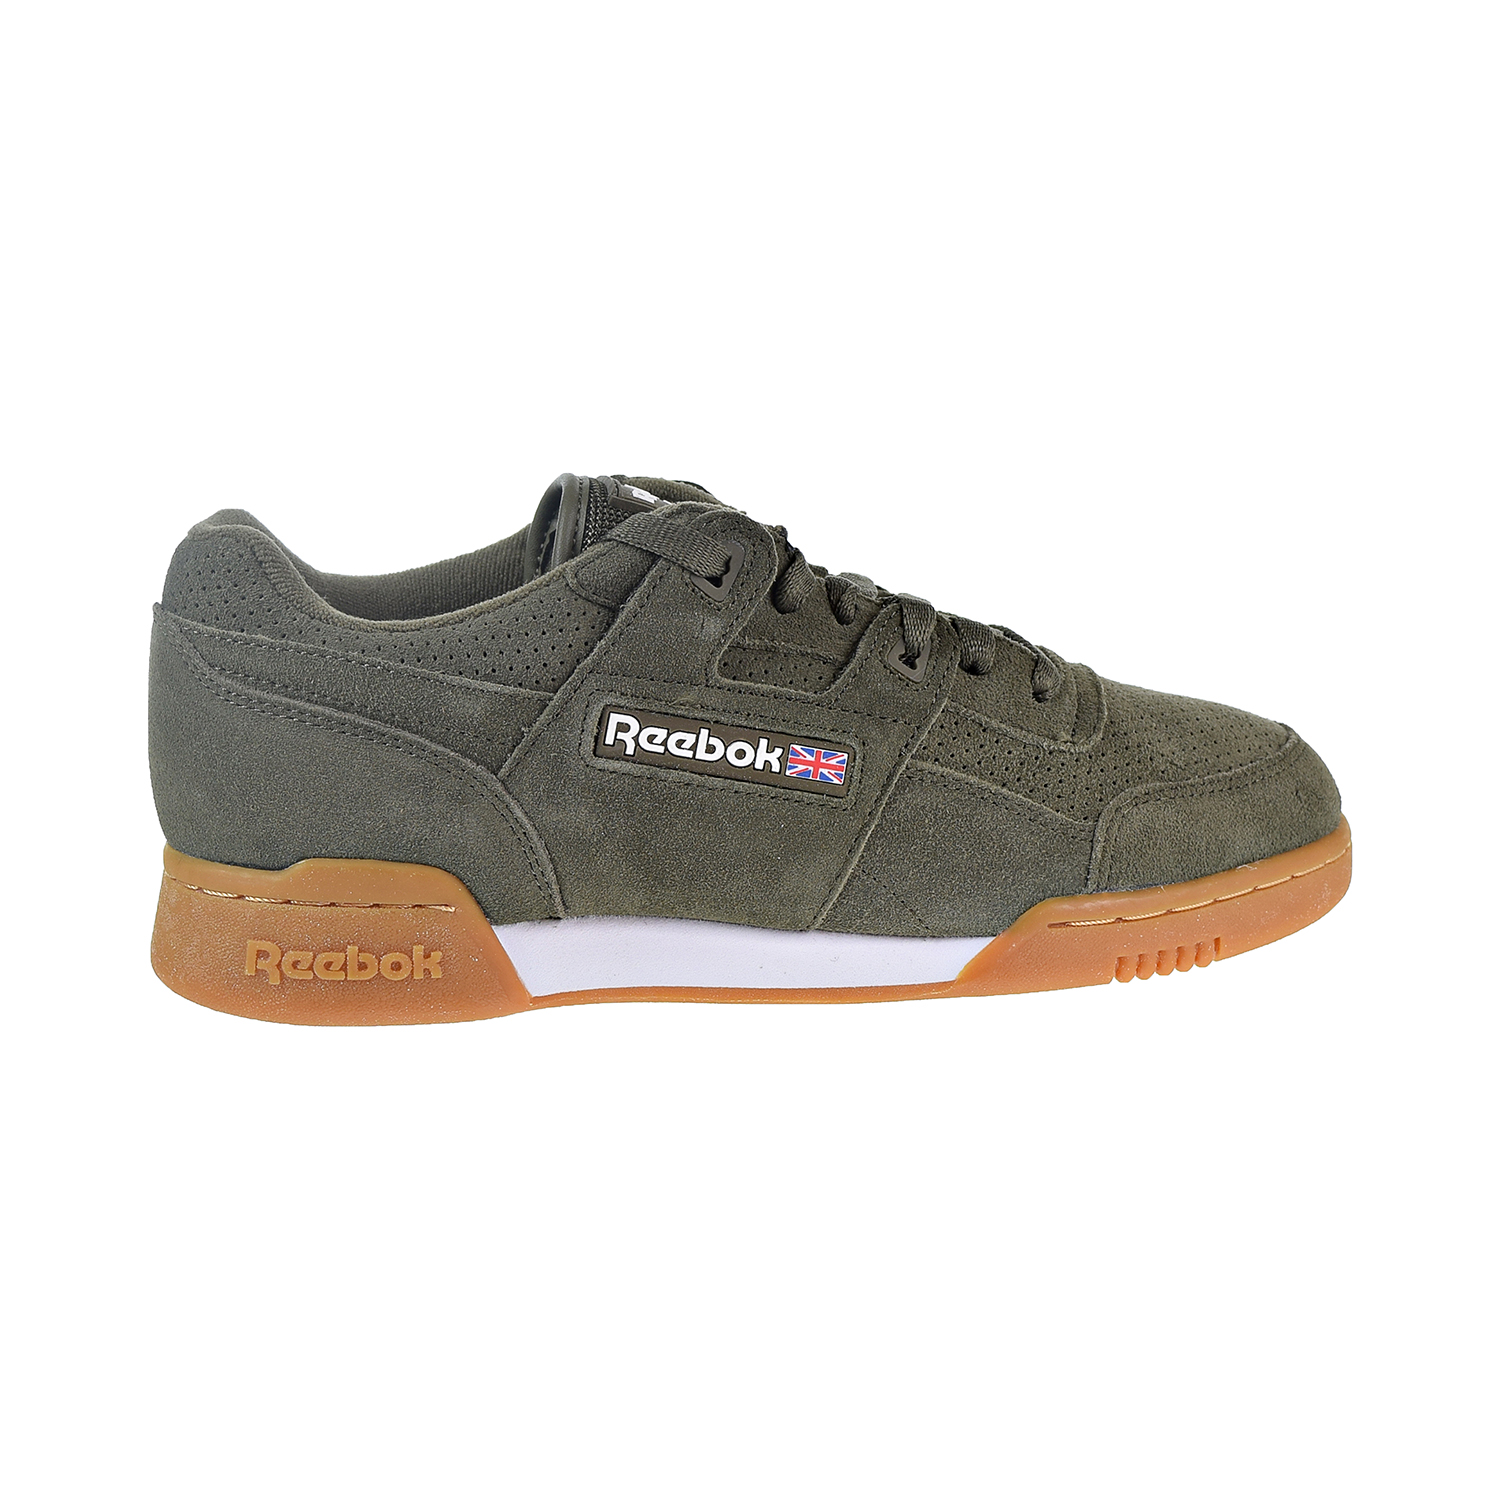 1a962f1f4a8 Details about Reebok Workout Plus SG Unisex Shoes Army Green White Gum  CN1053